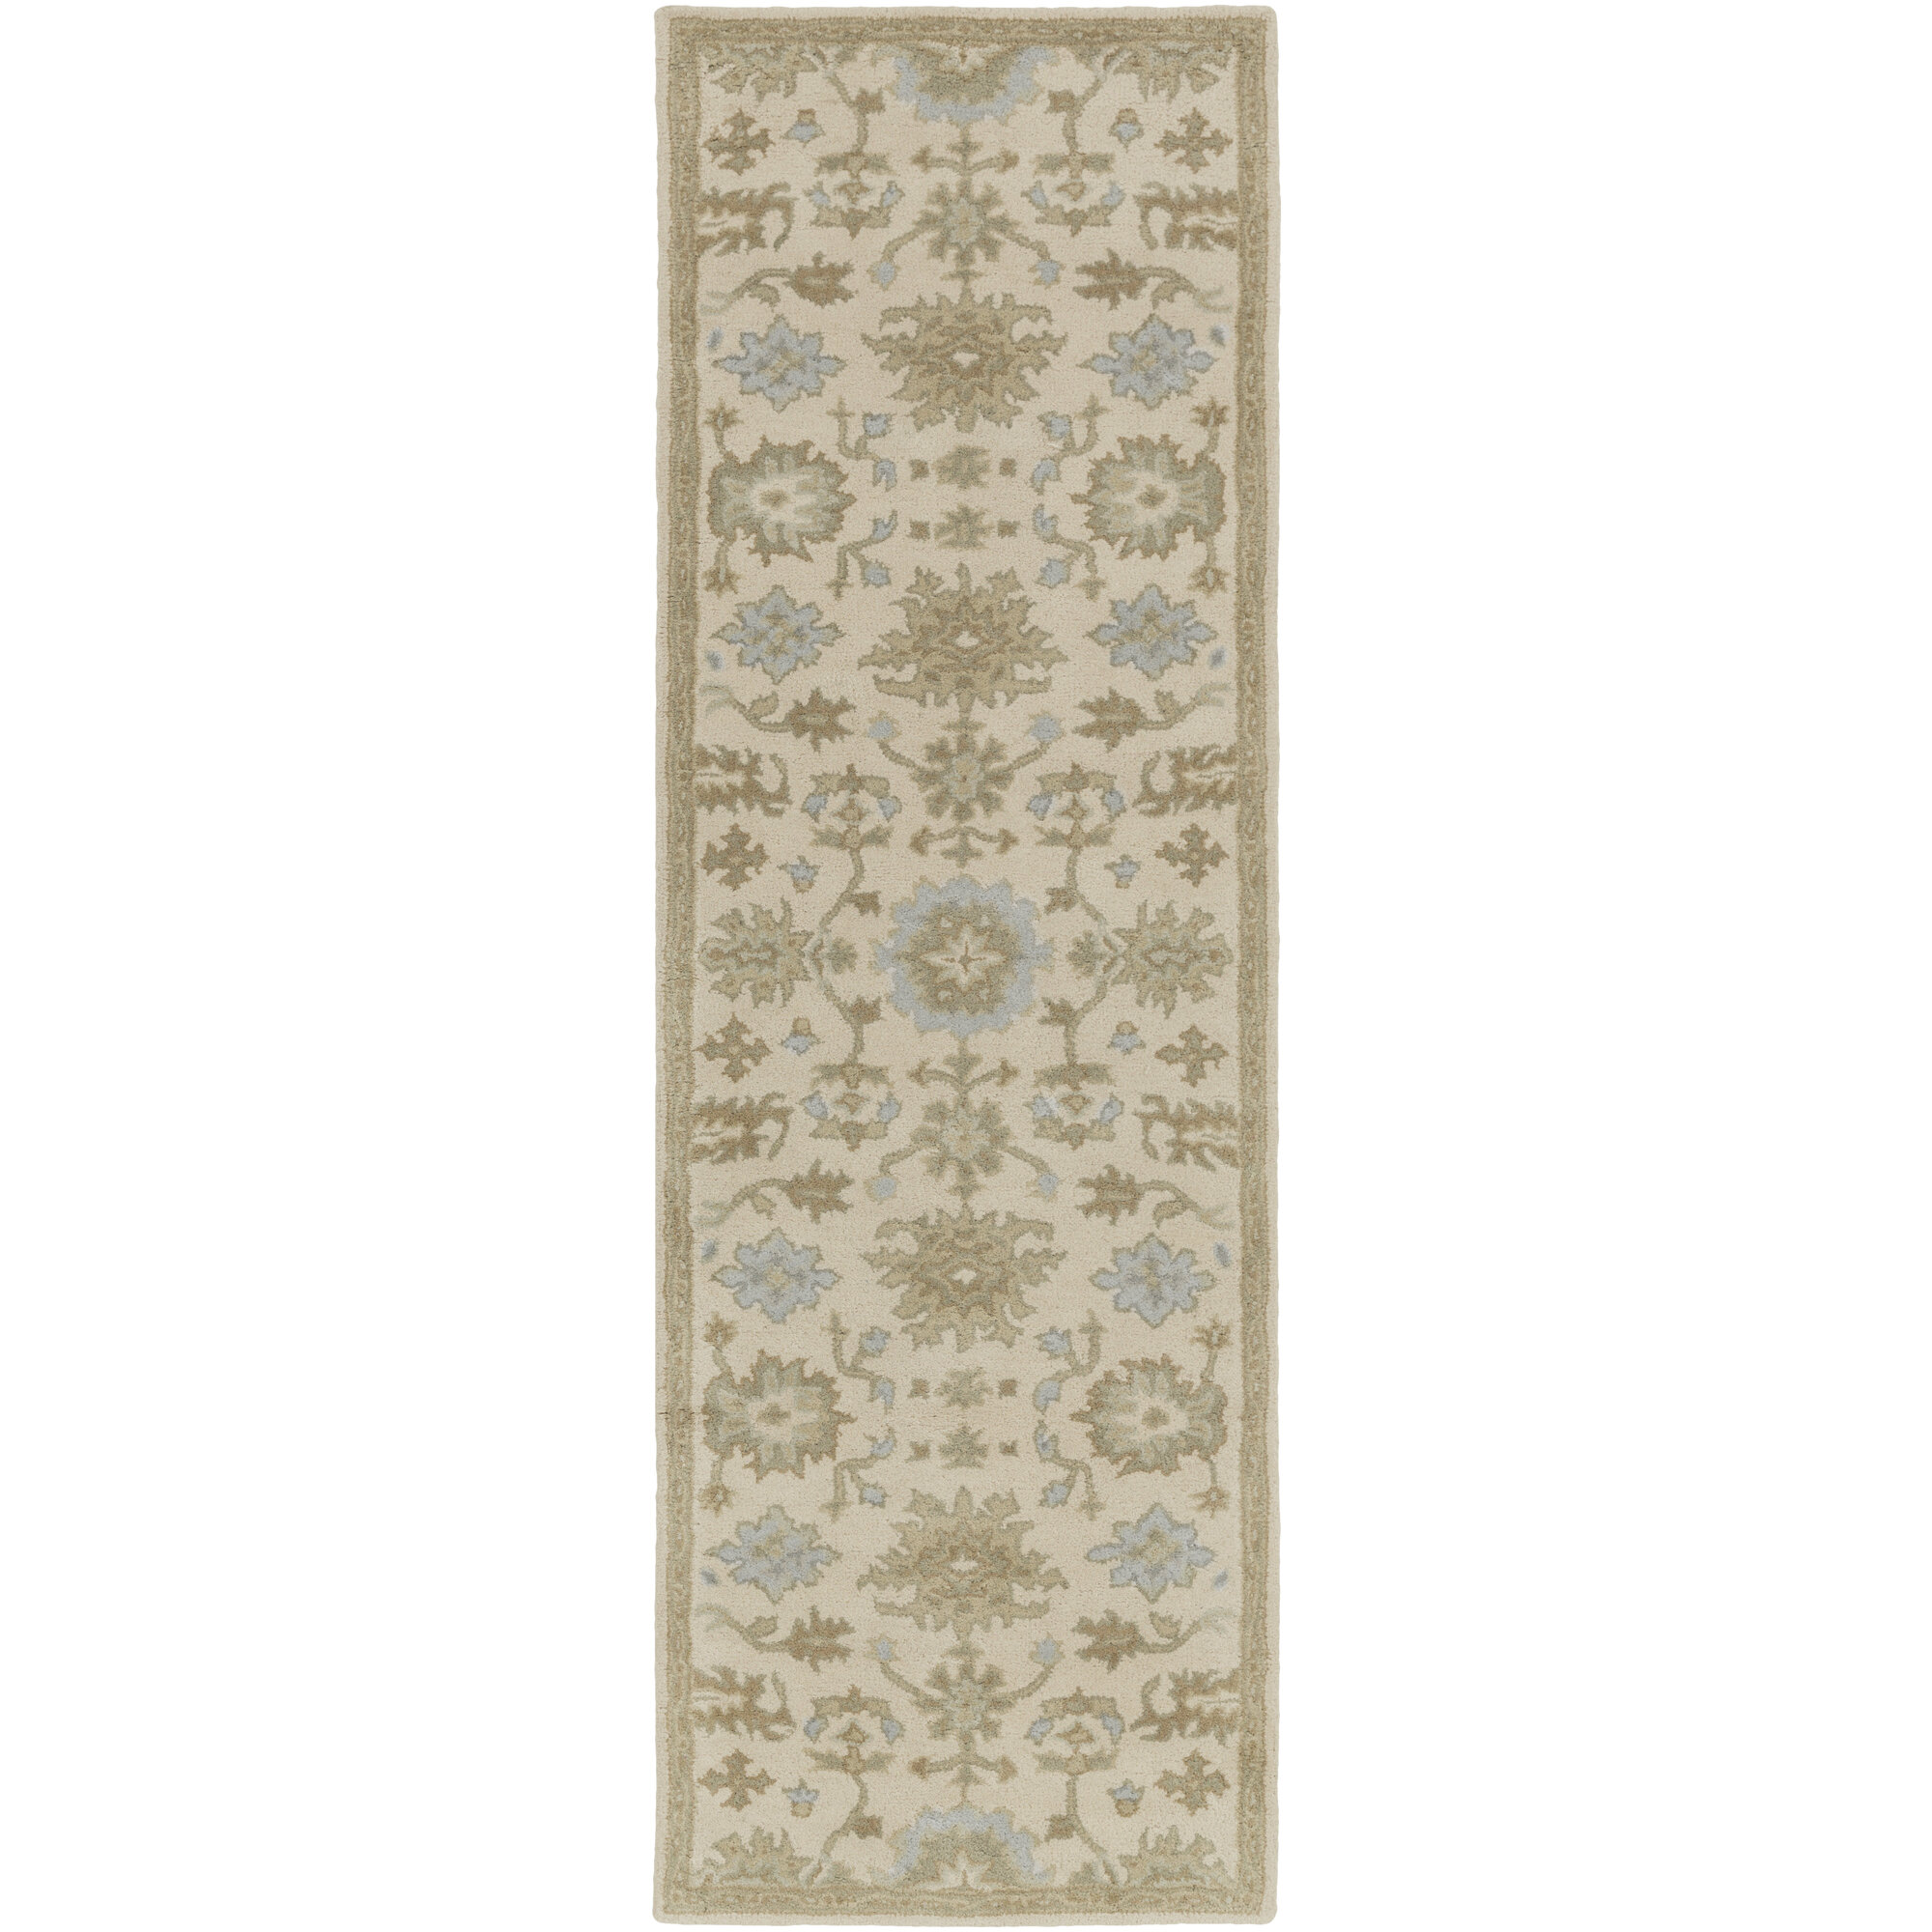 Willard Hand Woven Wool Beige Green Area Rug Reviews Joss Main